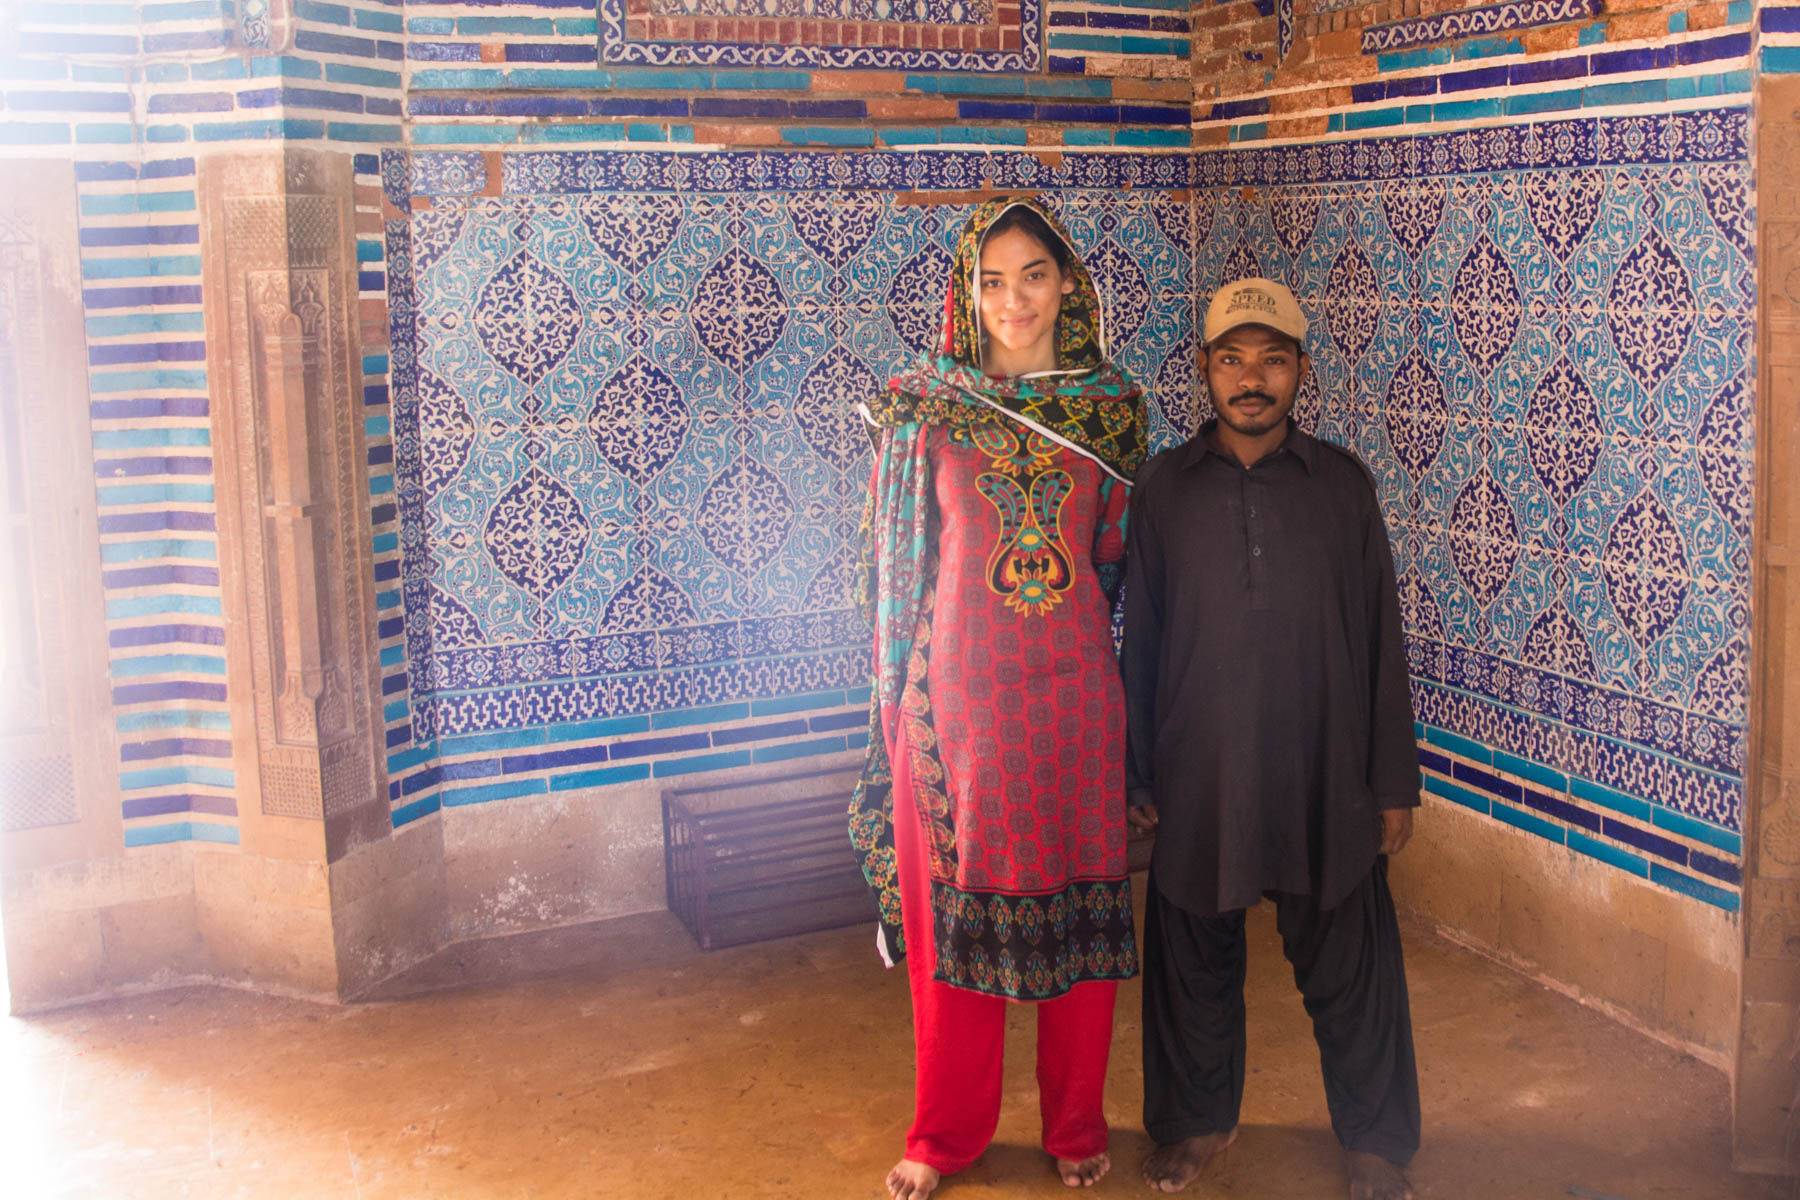 Soloe female traveler and a creepy man in Thatta, Pakistan